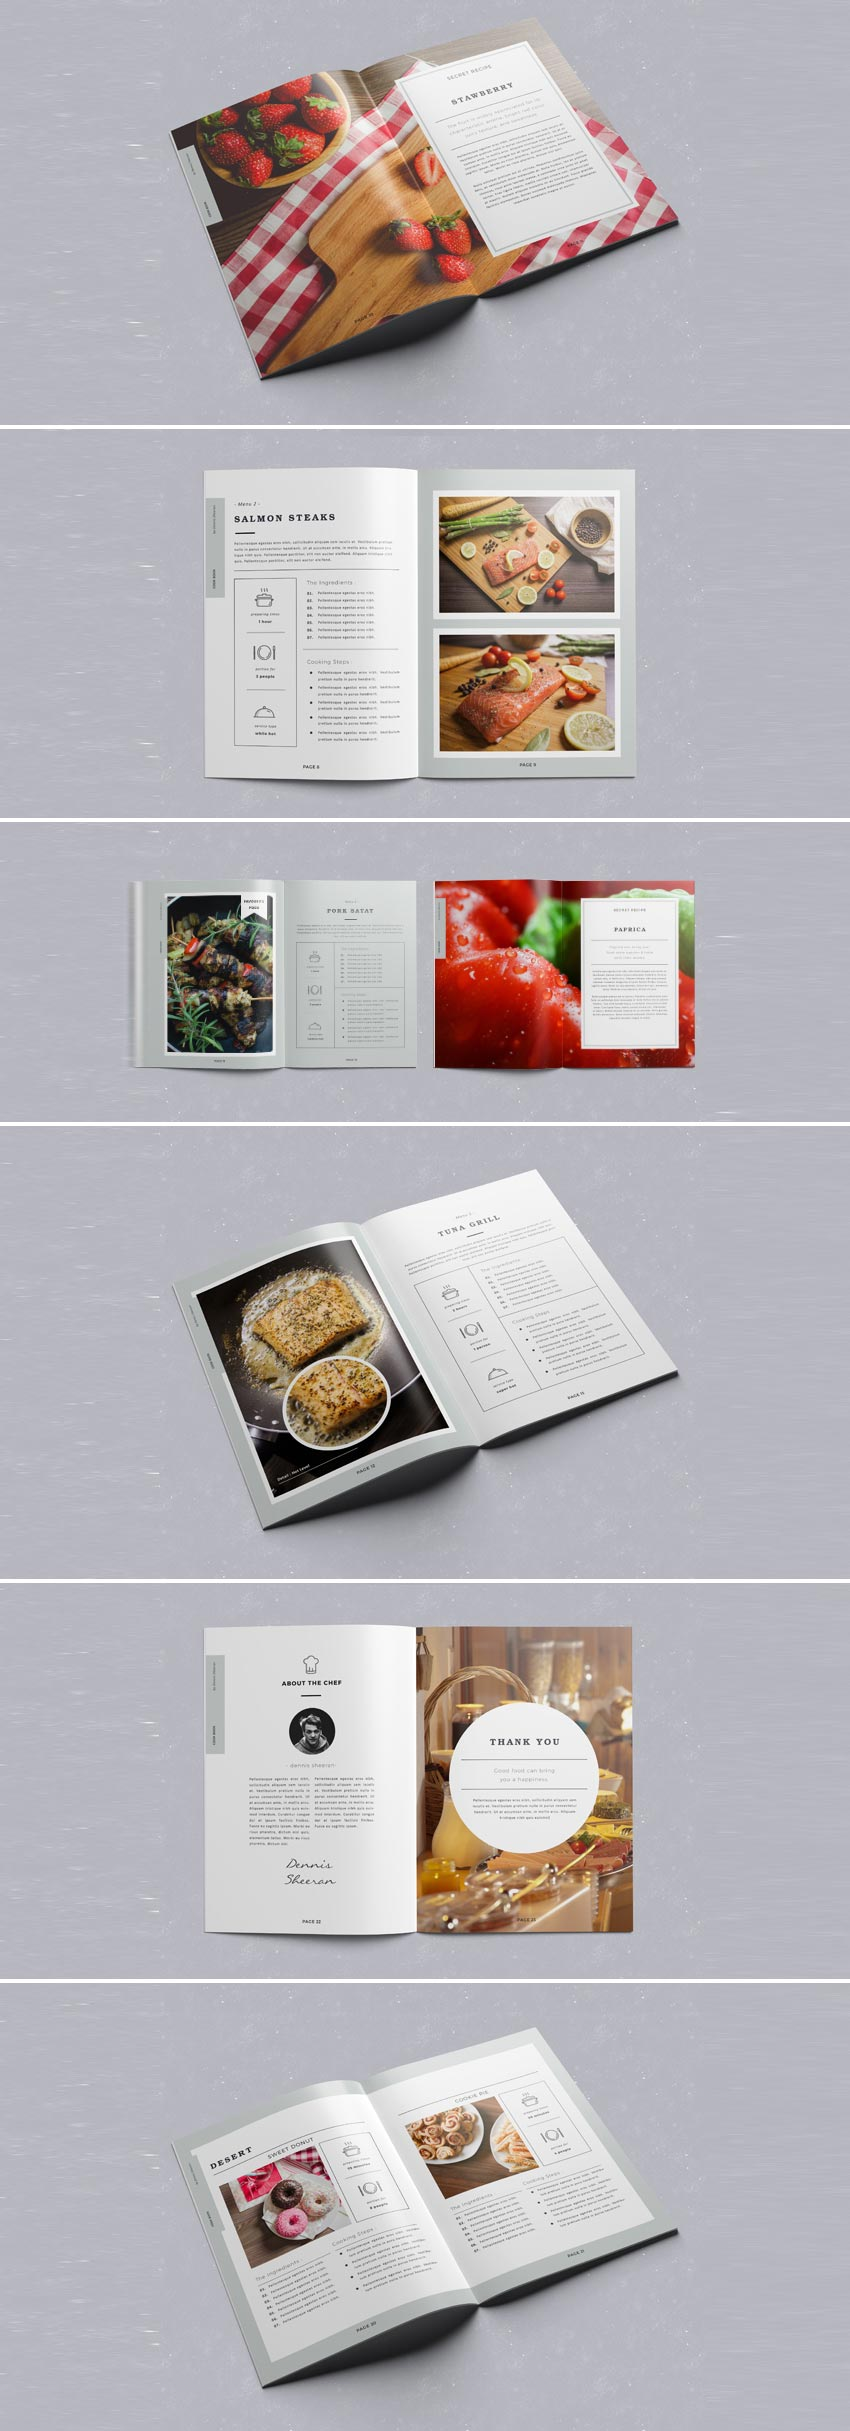 indesign templates for books - 25 indesign templates every designer should own